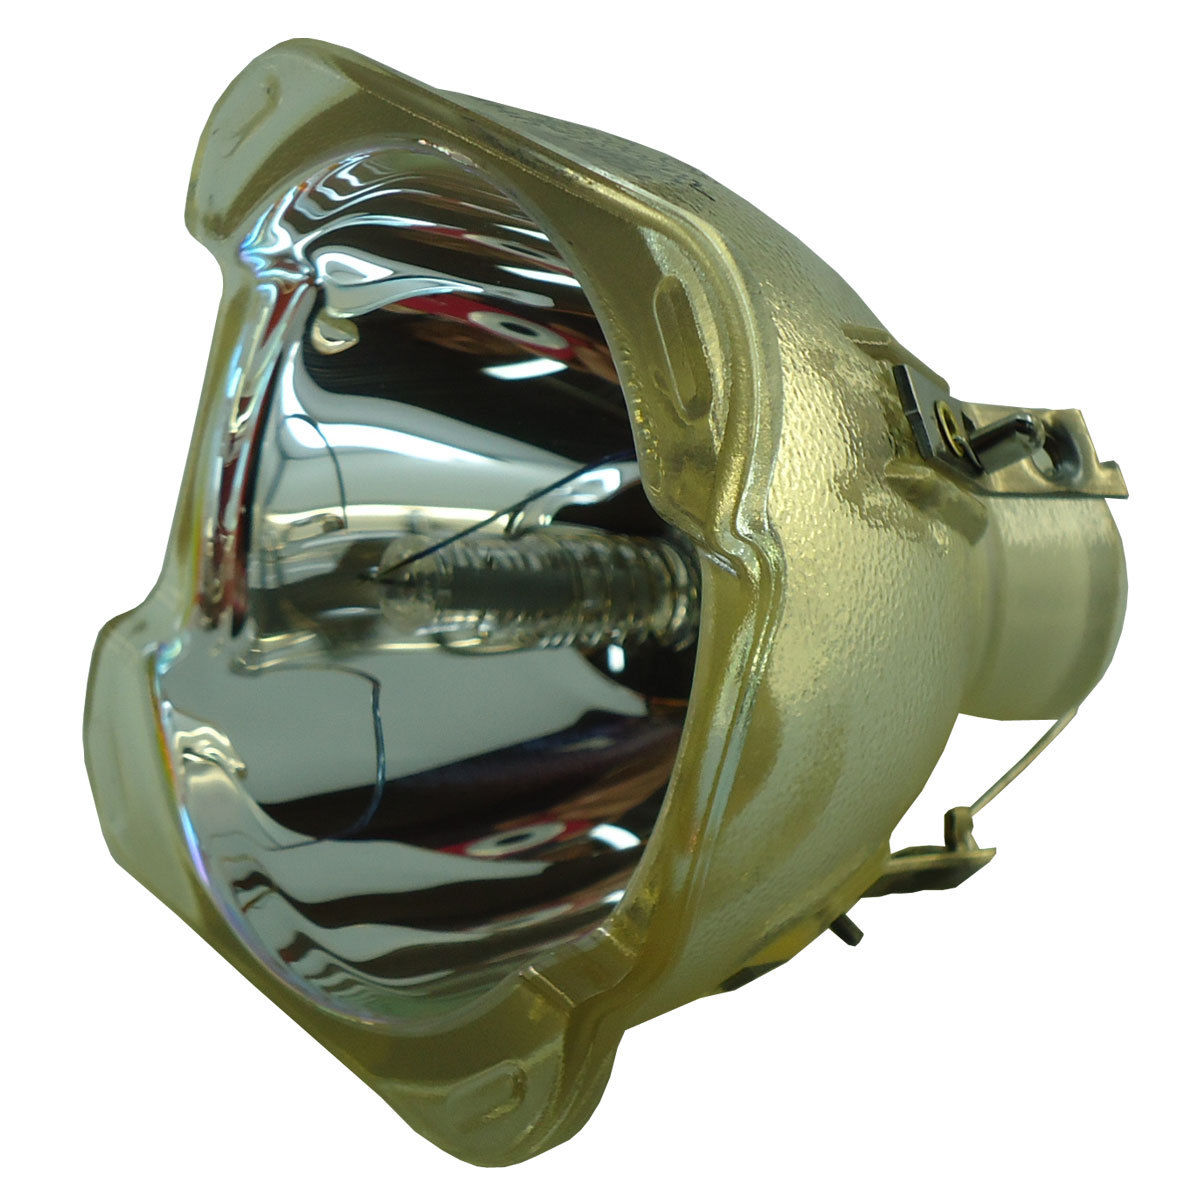 Compatible Bare Bulb 5J.J2D05.011 for BenQ SP920P Projector Lamp Bulb without housing replacement compatible bare bulb 5j 08g01 001 lamp for benq mp730 projector